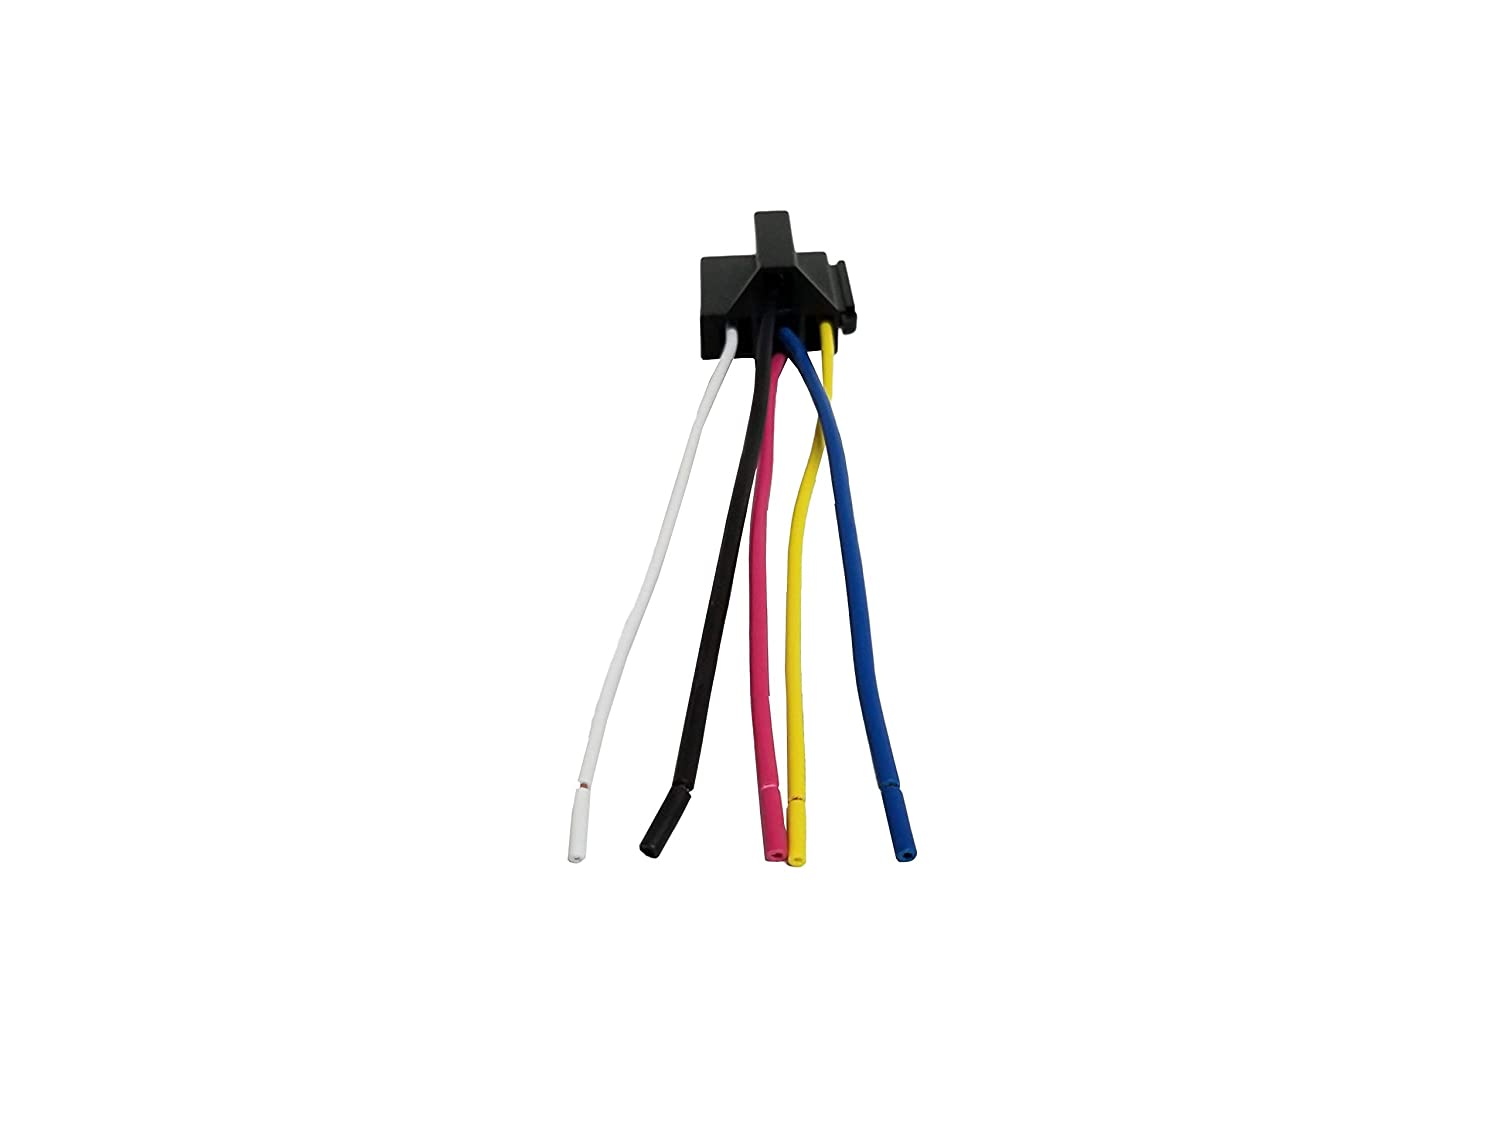 Accessory Power Automotive 10 Bass Rockers Single 12v 30 40 Amp 5 Pin Spdt Automotive Relay Wires Harness Socket